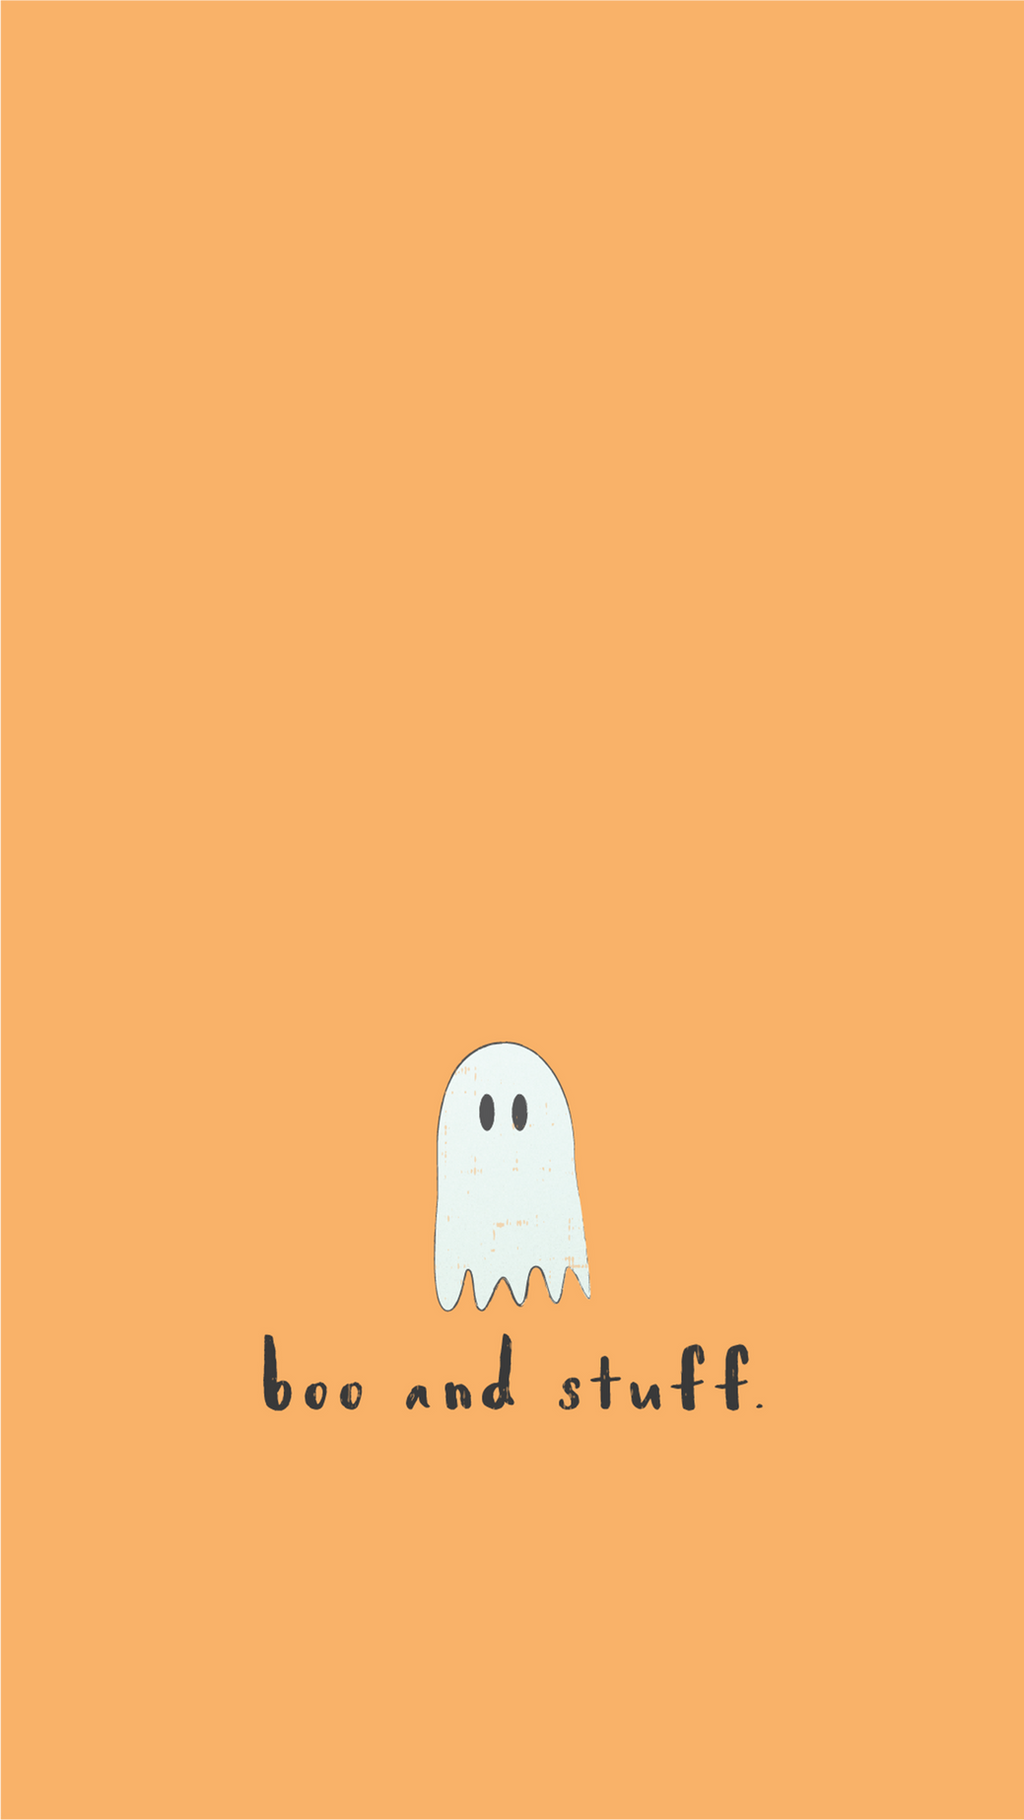 Halloween ghost phone background wallpaper by sunnyfunlane on deviantart halloween ghost phone background wallpaper by sunnyfunlane halloween ghost phone background wallpaper by sunnyfunlane voltagebd Images